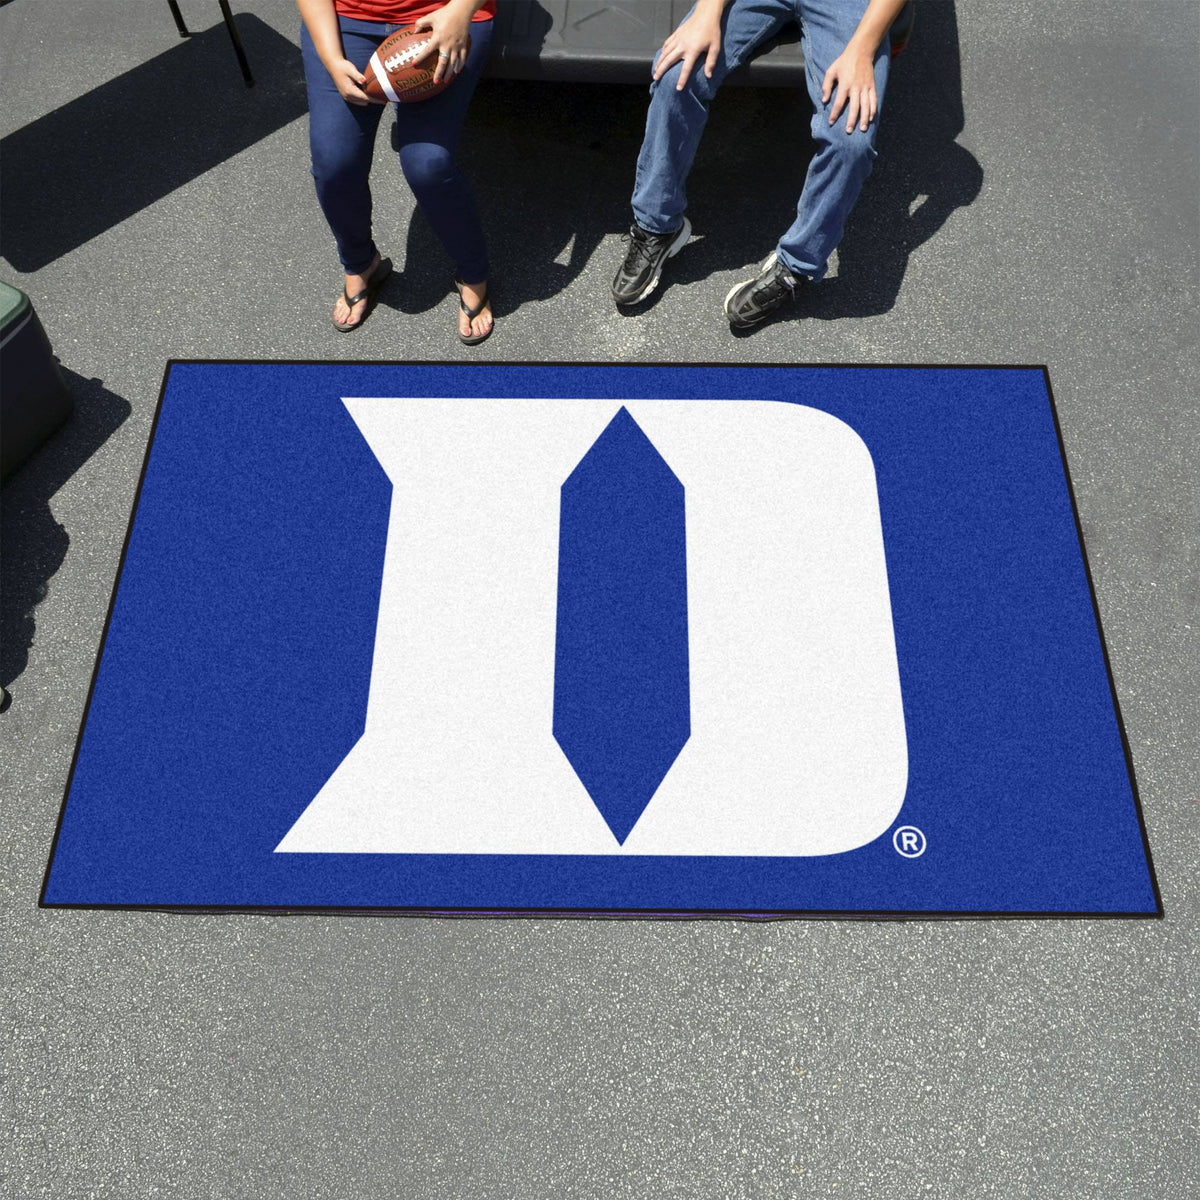 Collegiate - Ulti-Mat: A - L Collegiate Mats, Rectangular Mats, Ulti-Mat, Collegiate, Home Fan Mats Duke 2